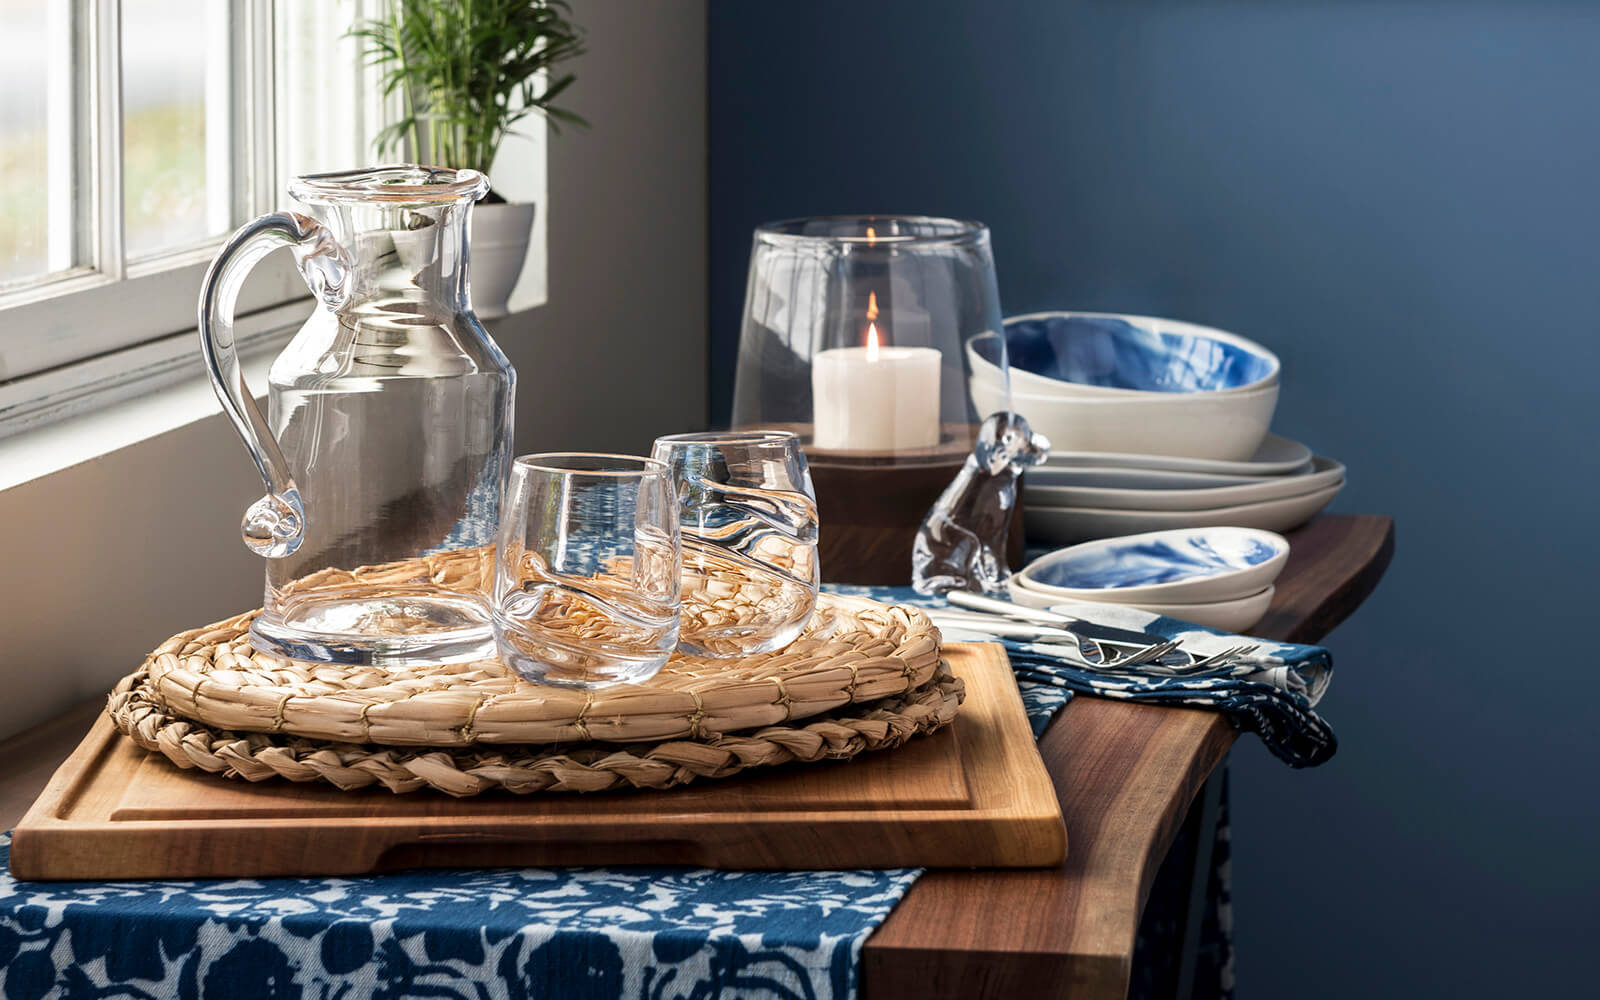 Gifts For Him Featuring Glass and Pottery Pieces